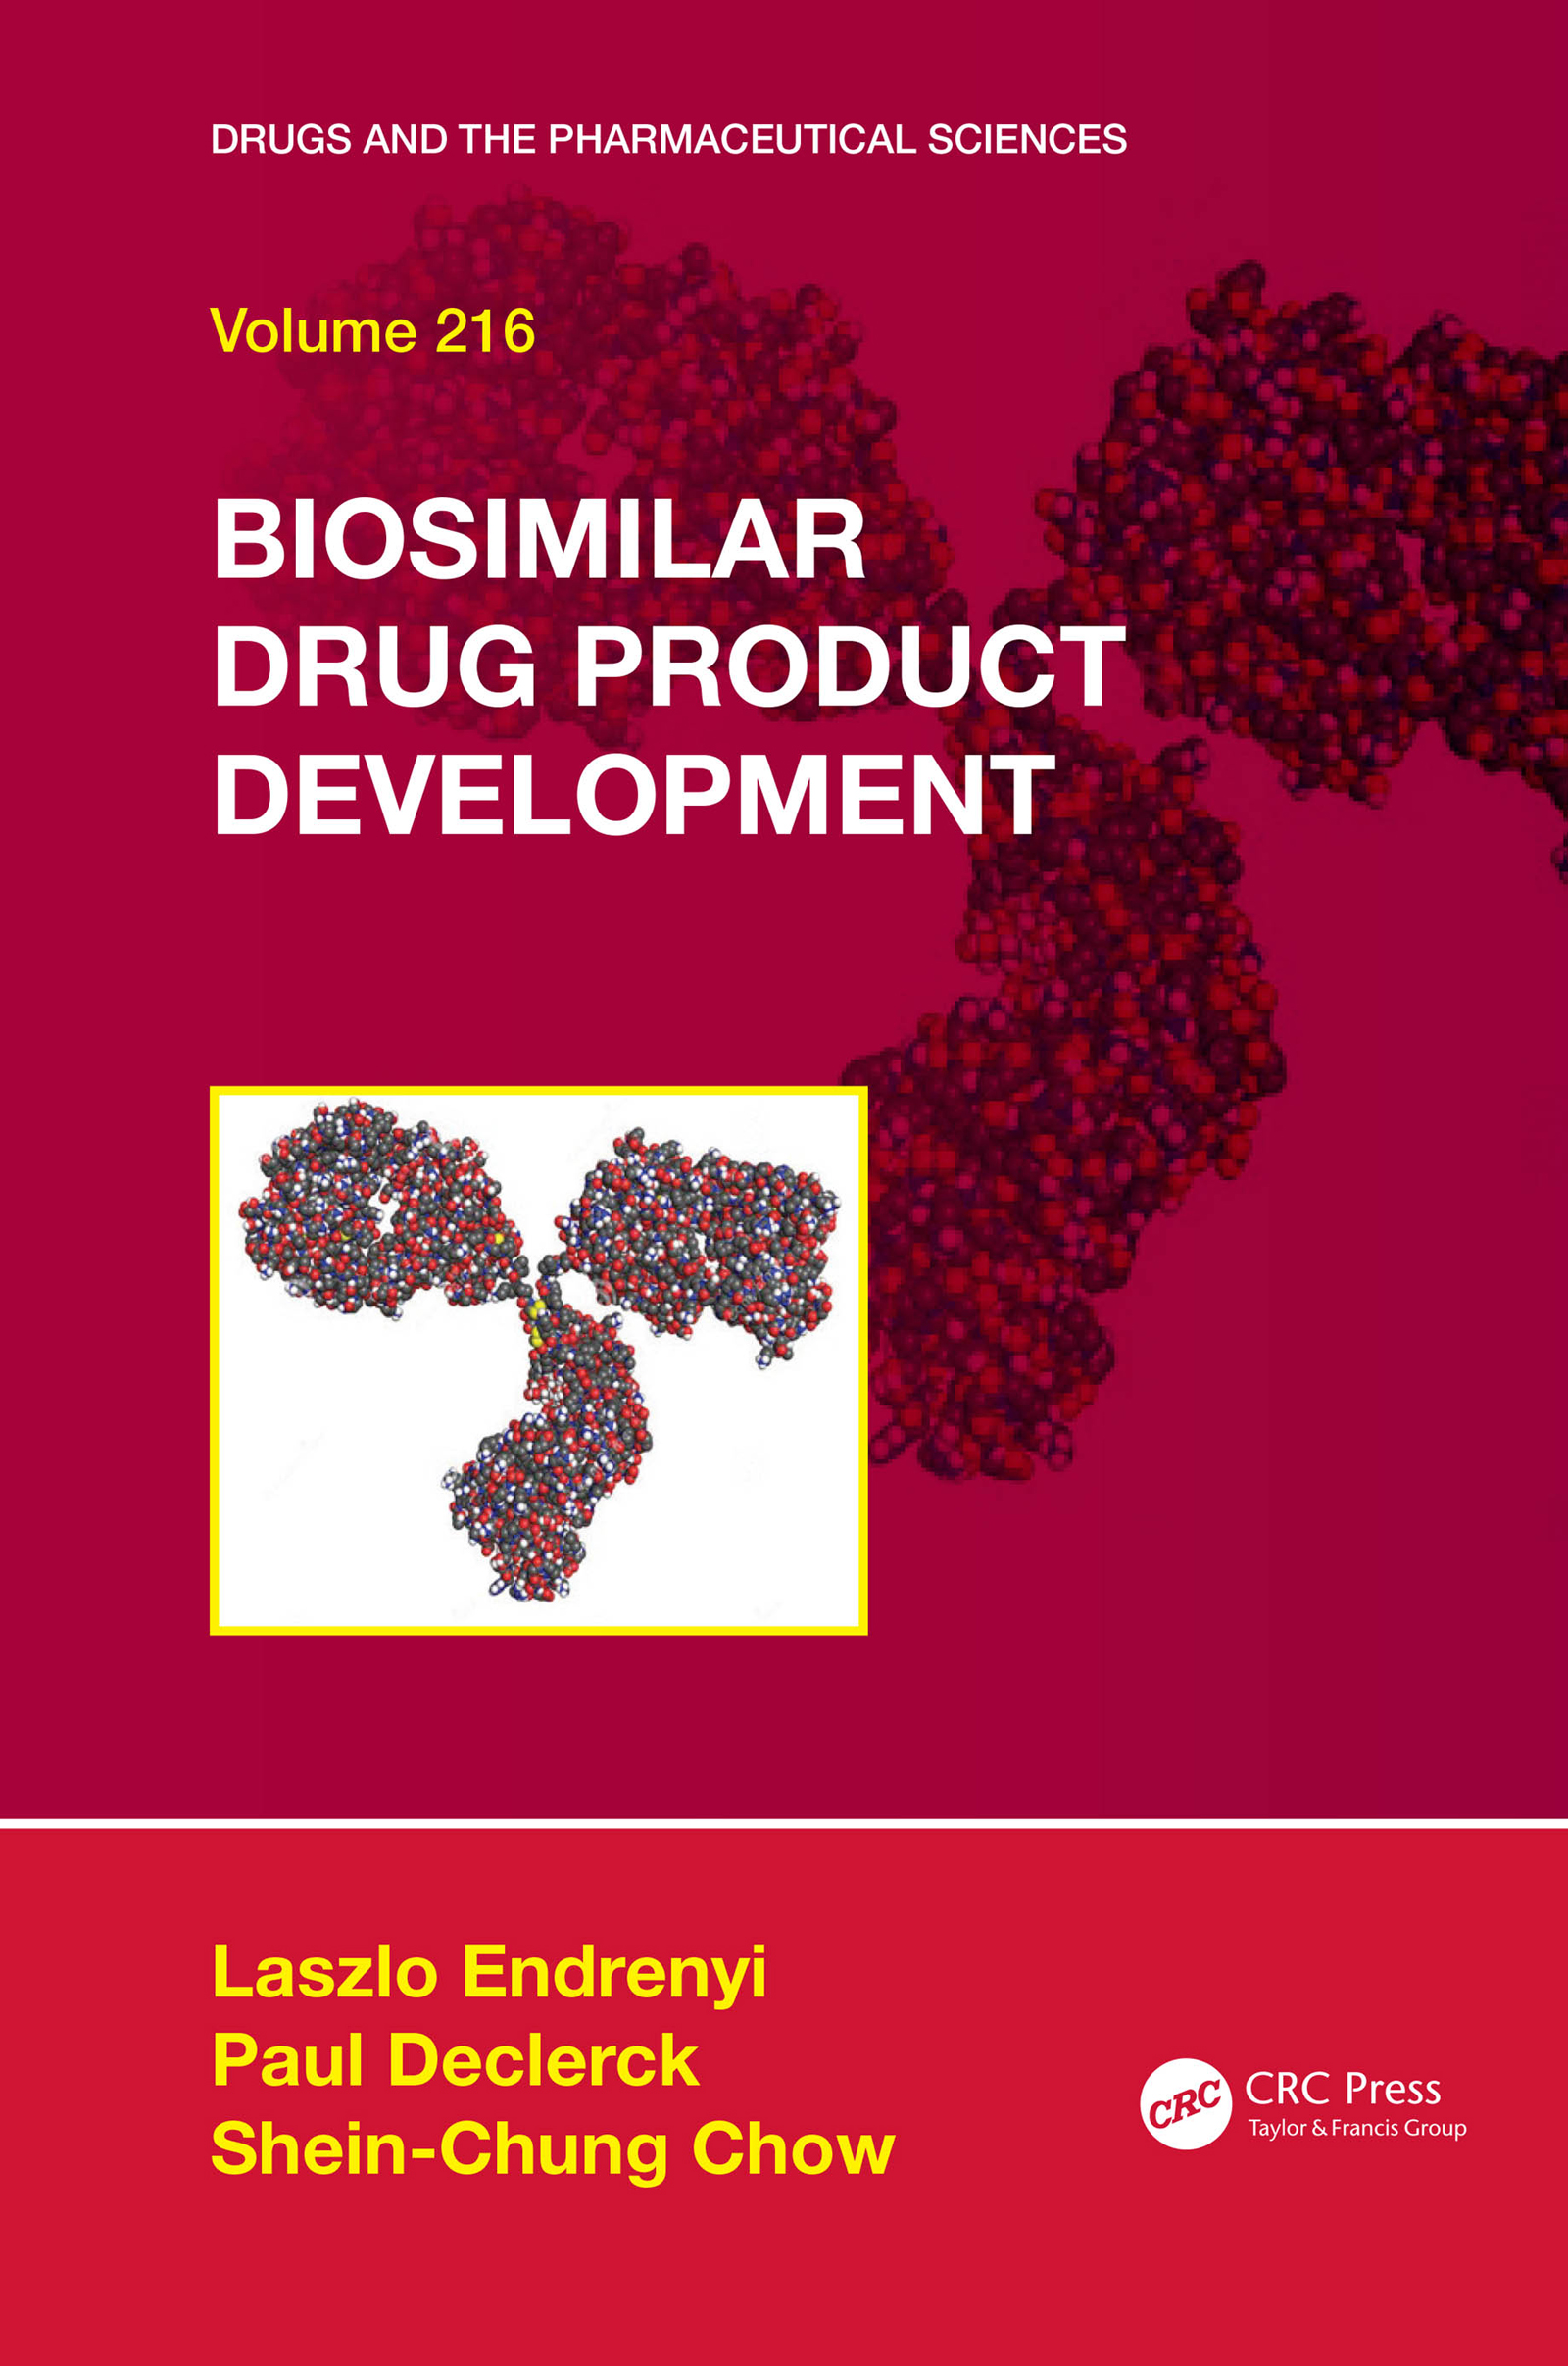 The Role of the Immunogenicity Evaluation for Biosimilars